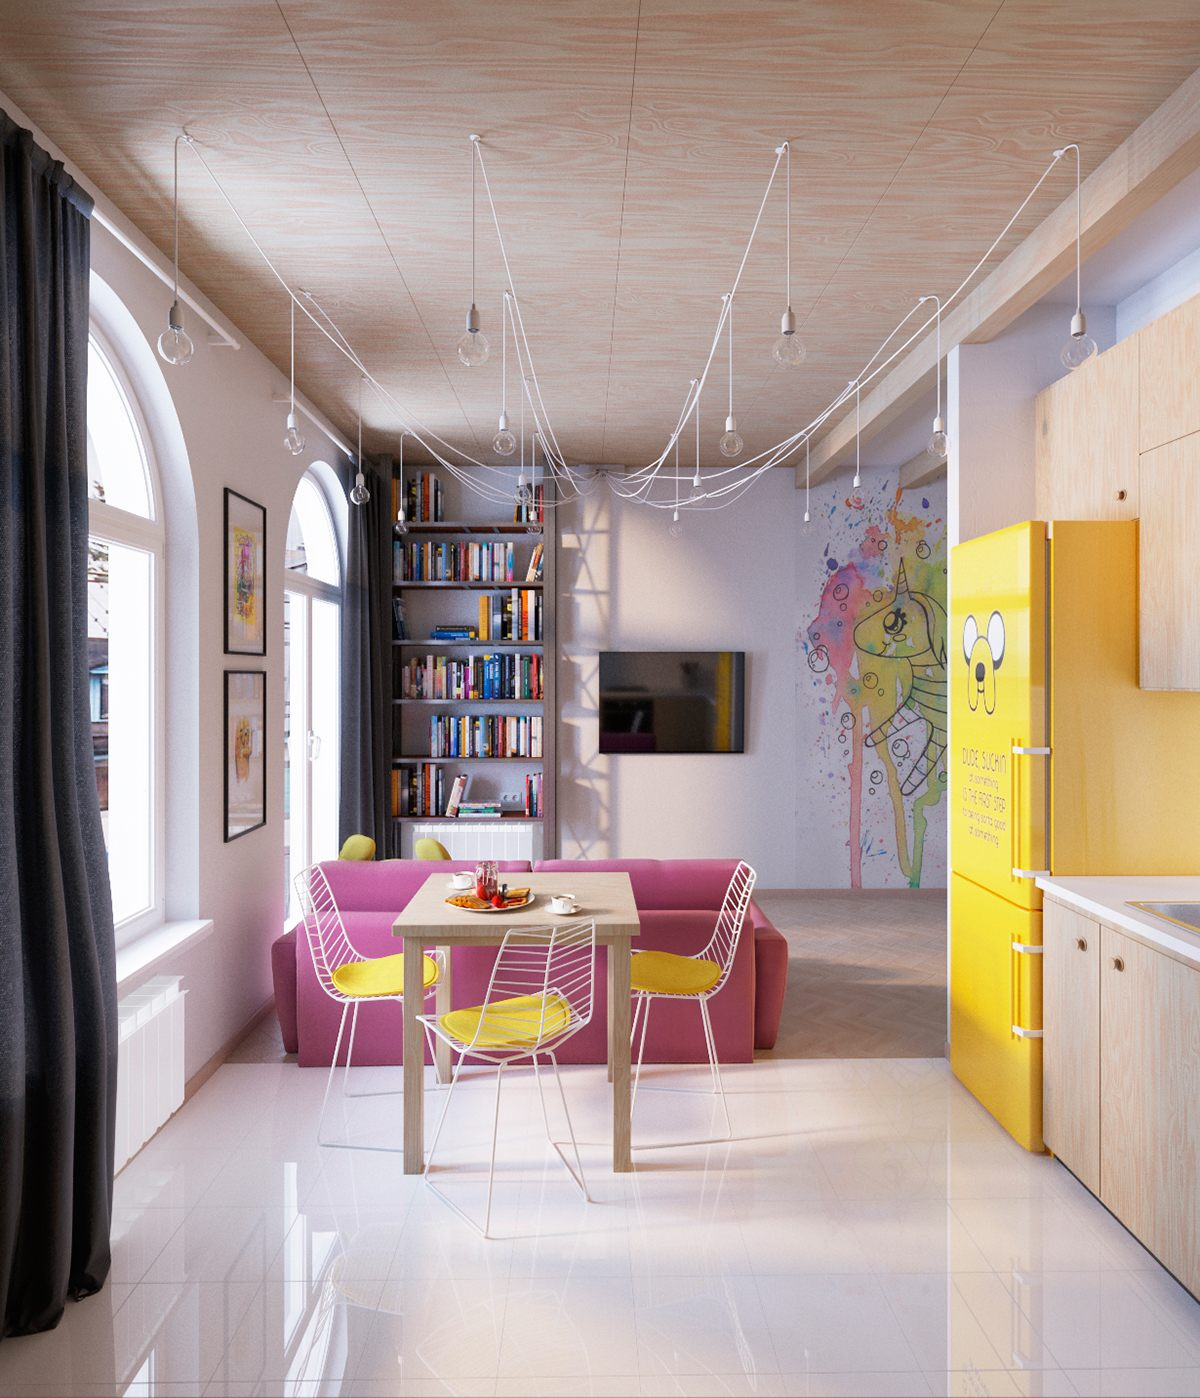 Colorful interior designs styles